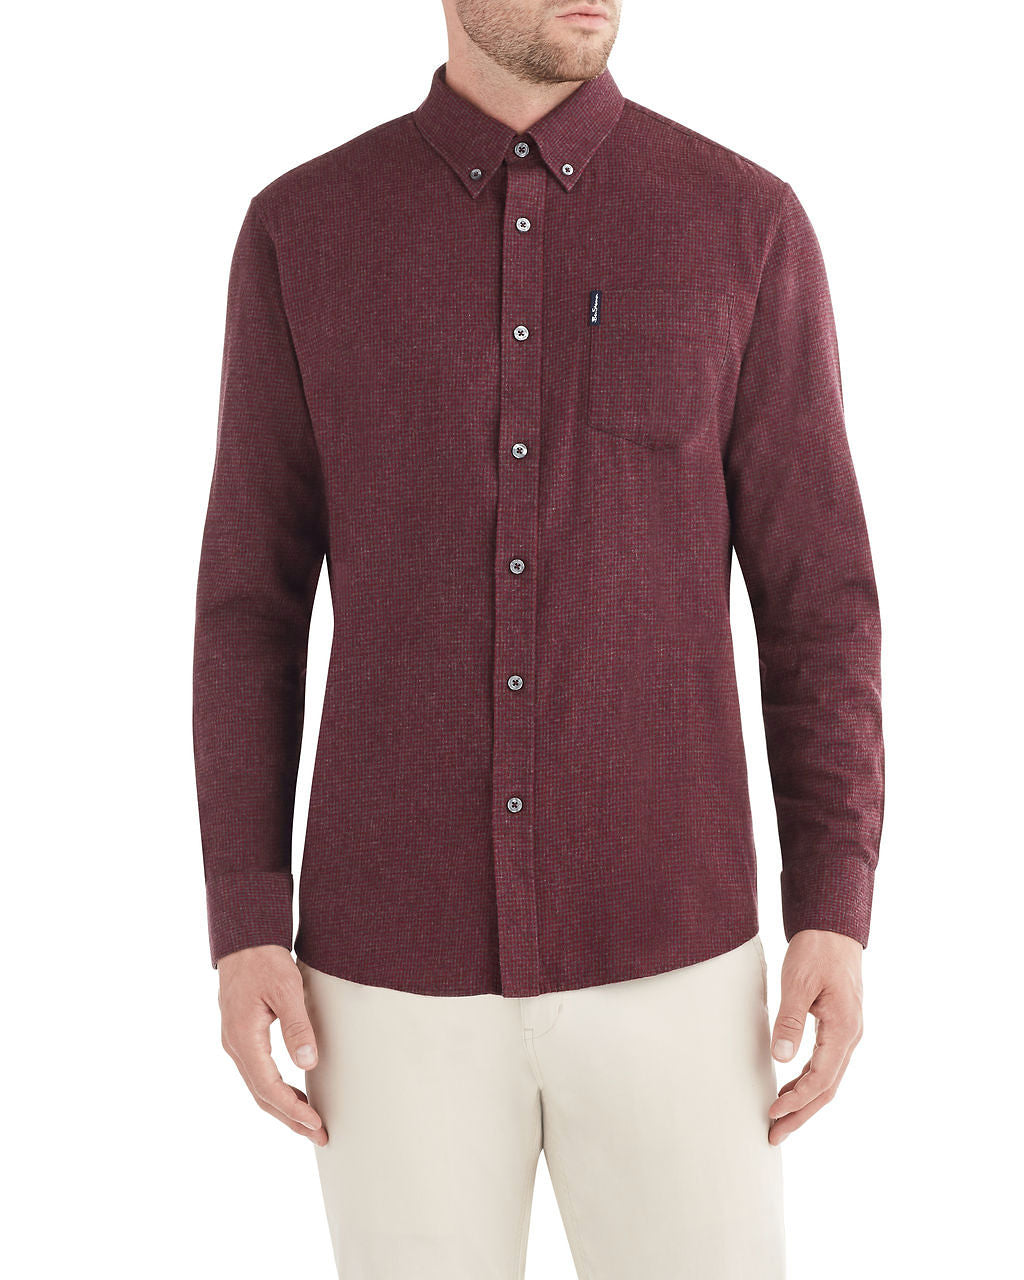 Long-Sleeve Brushed Dogtooth Shirt - Wine